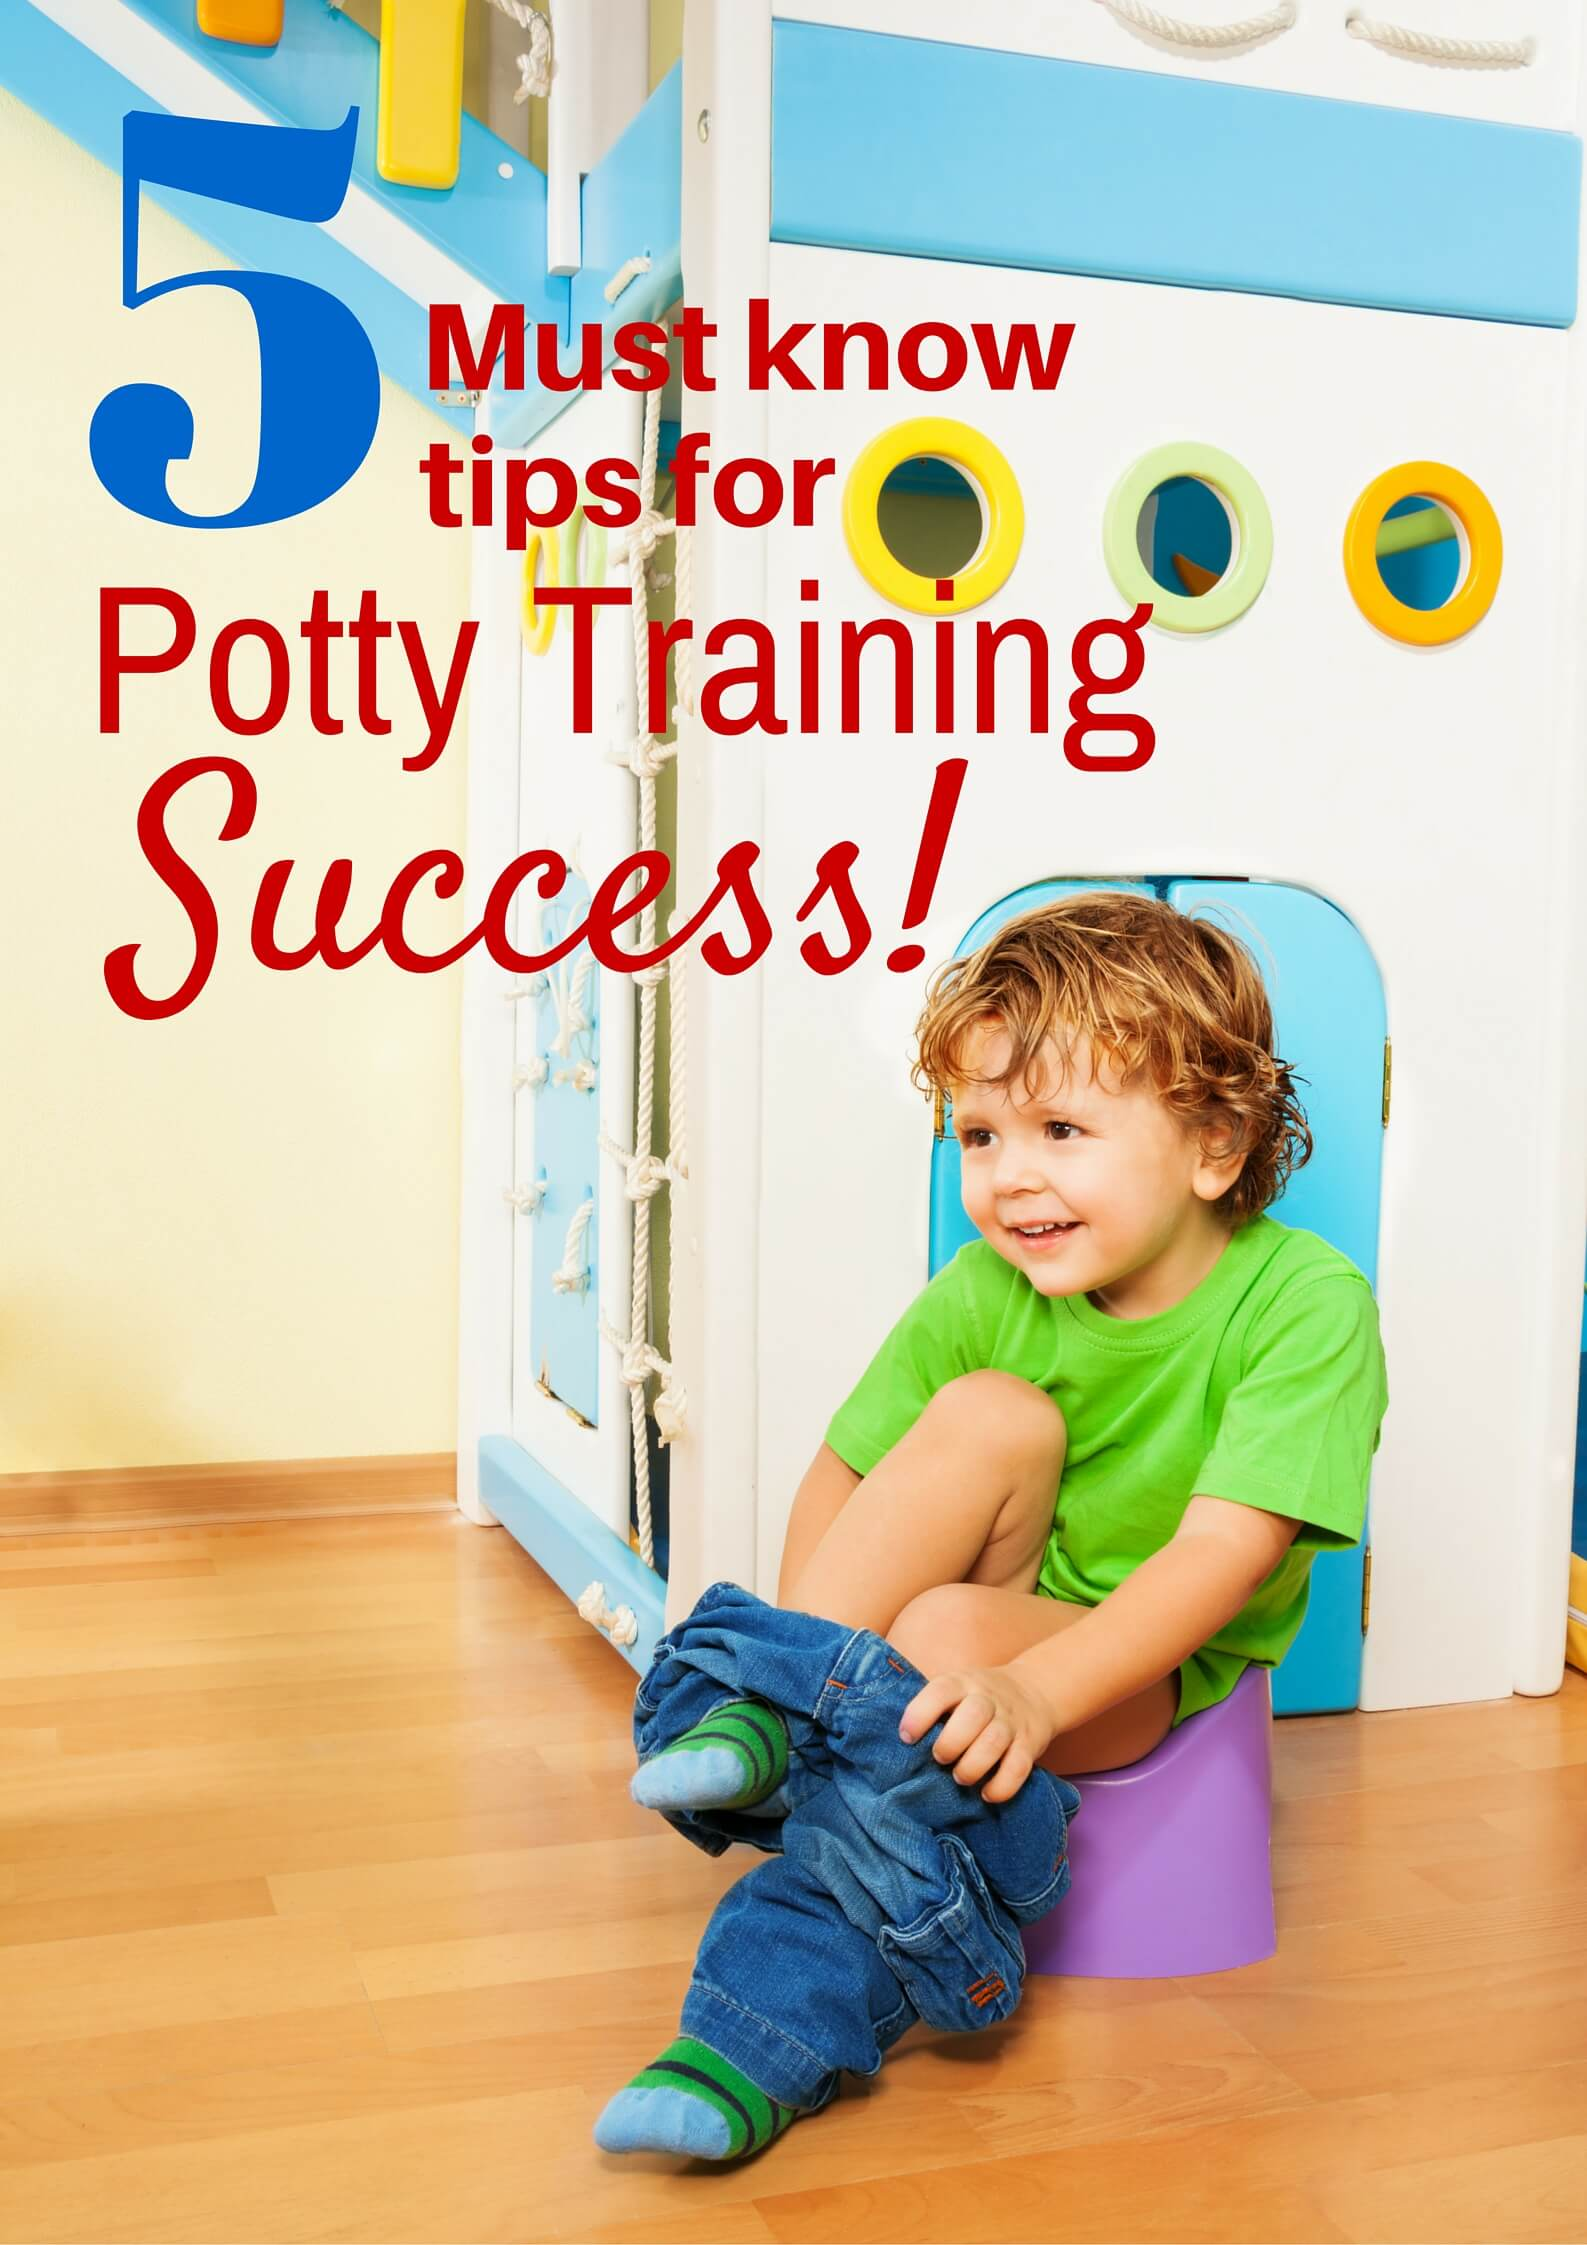 5 Must Know Potty Training Tips for Success